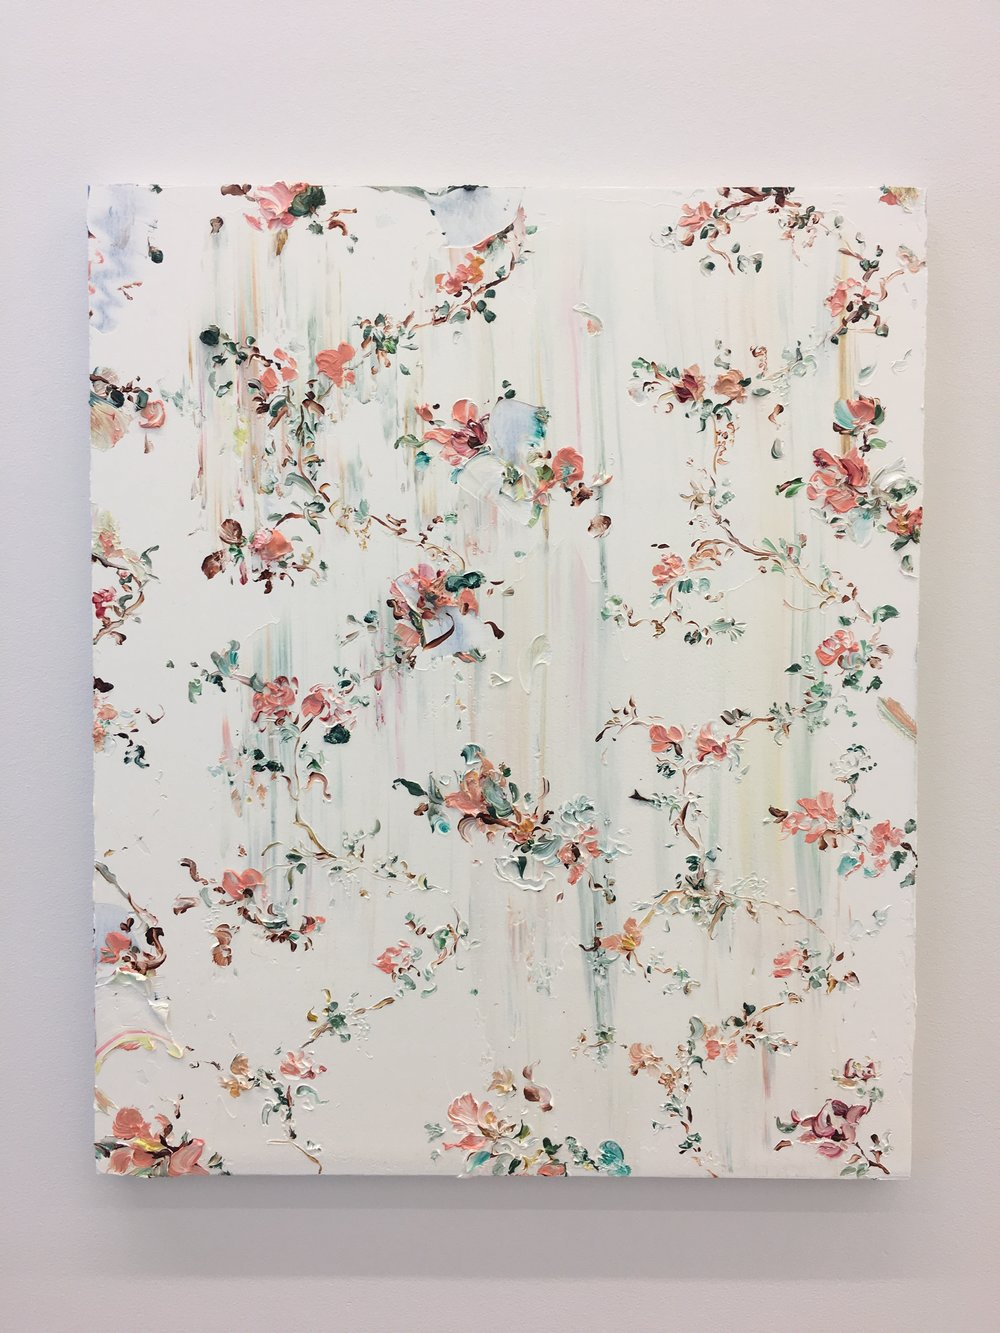 Tess Michalik, Untitled, 2018. Oil on primed wood panel, 24 x 20 inches